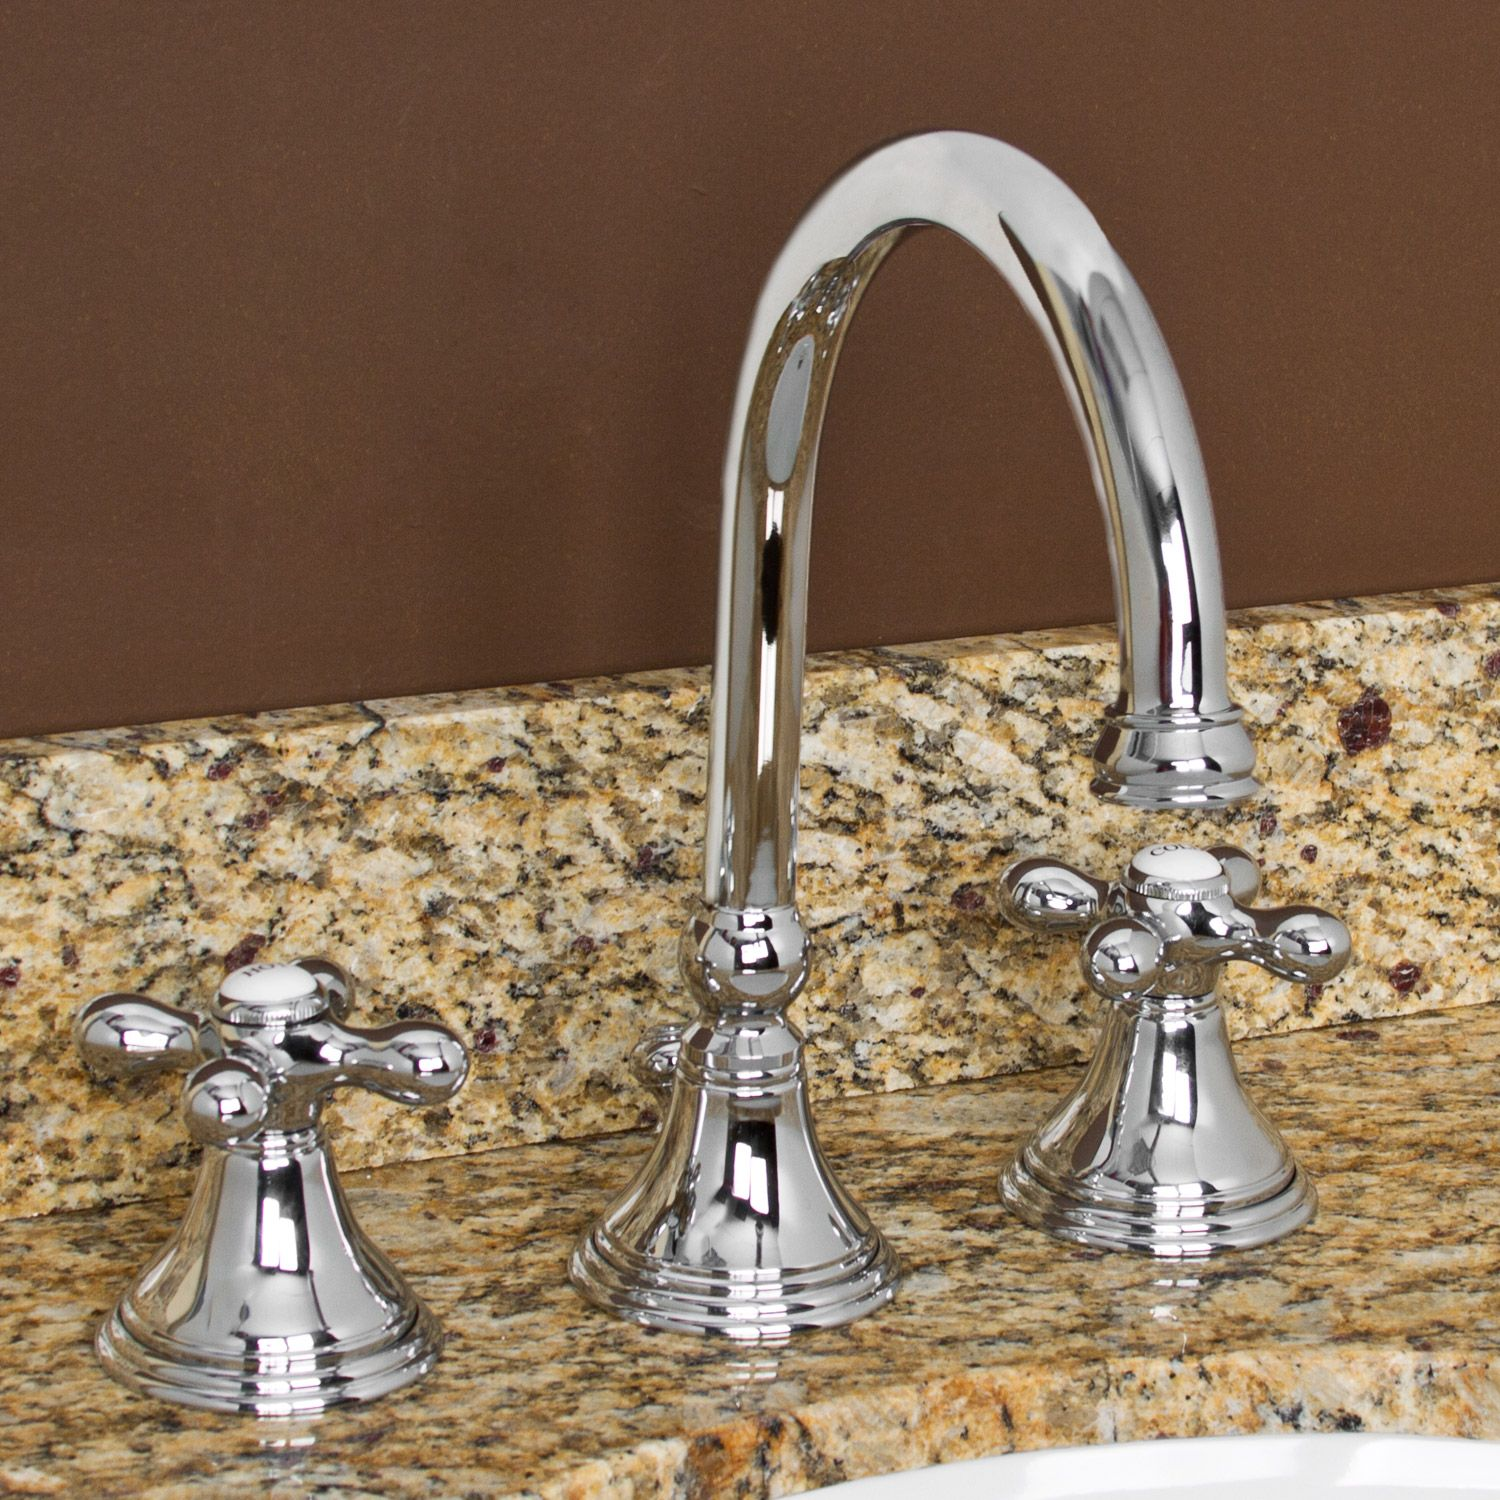 Melanie Widespread Gooseneck Bathroom Faucet   Cross Handles